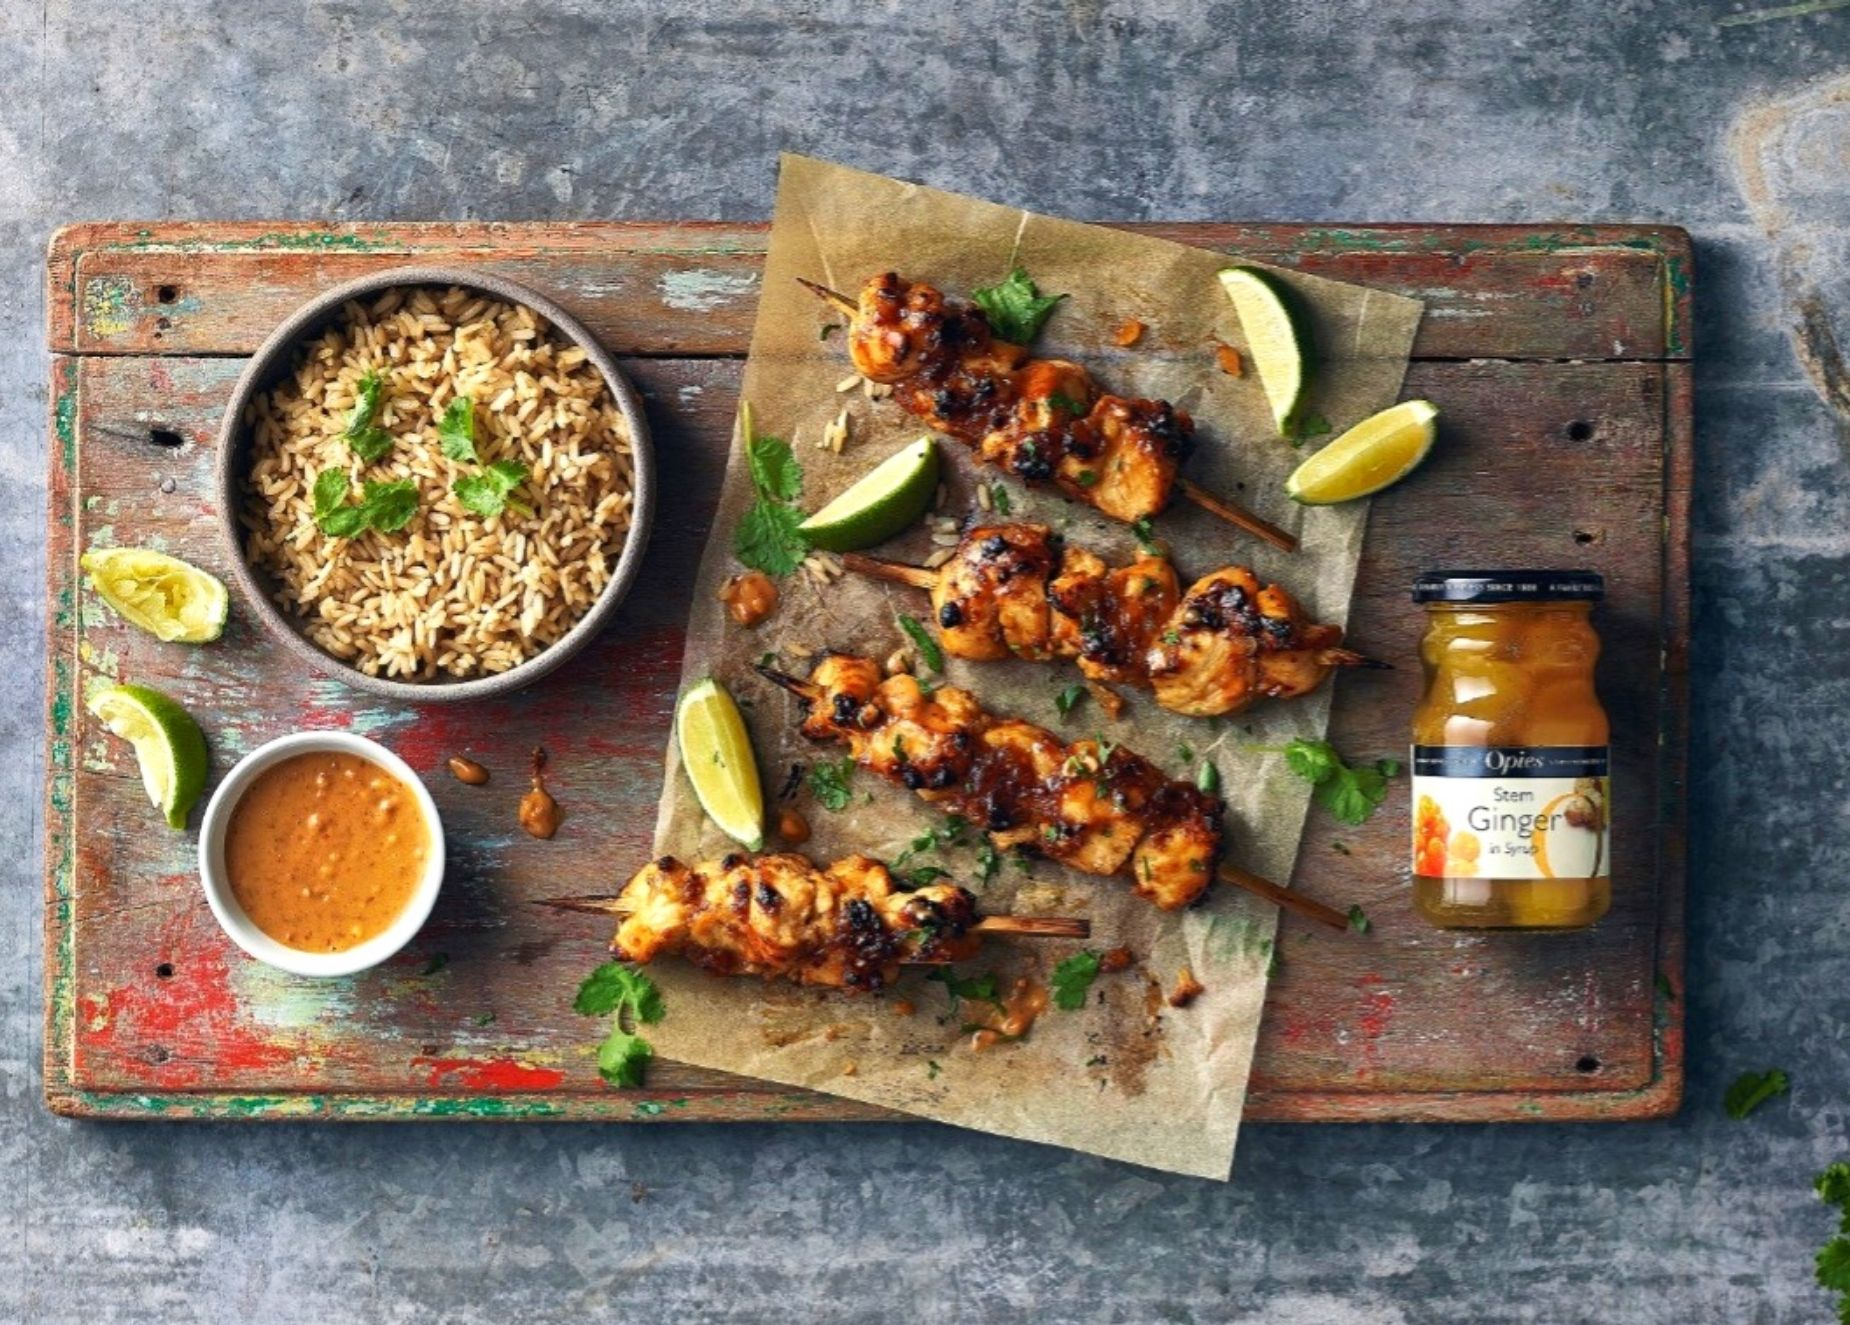 Mid-Week Menu – Ginger chicken satay skewers